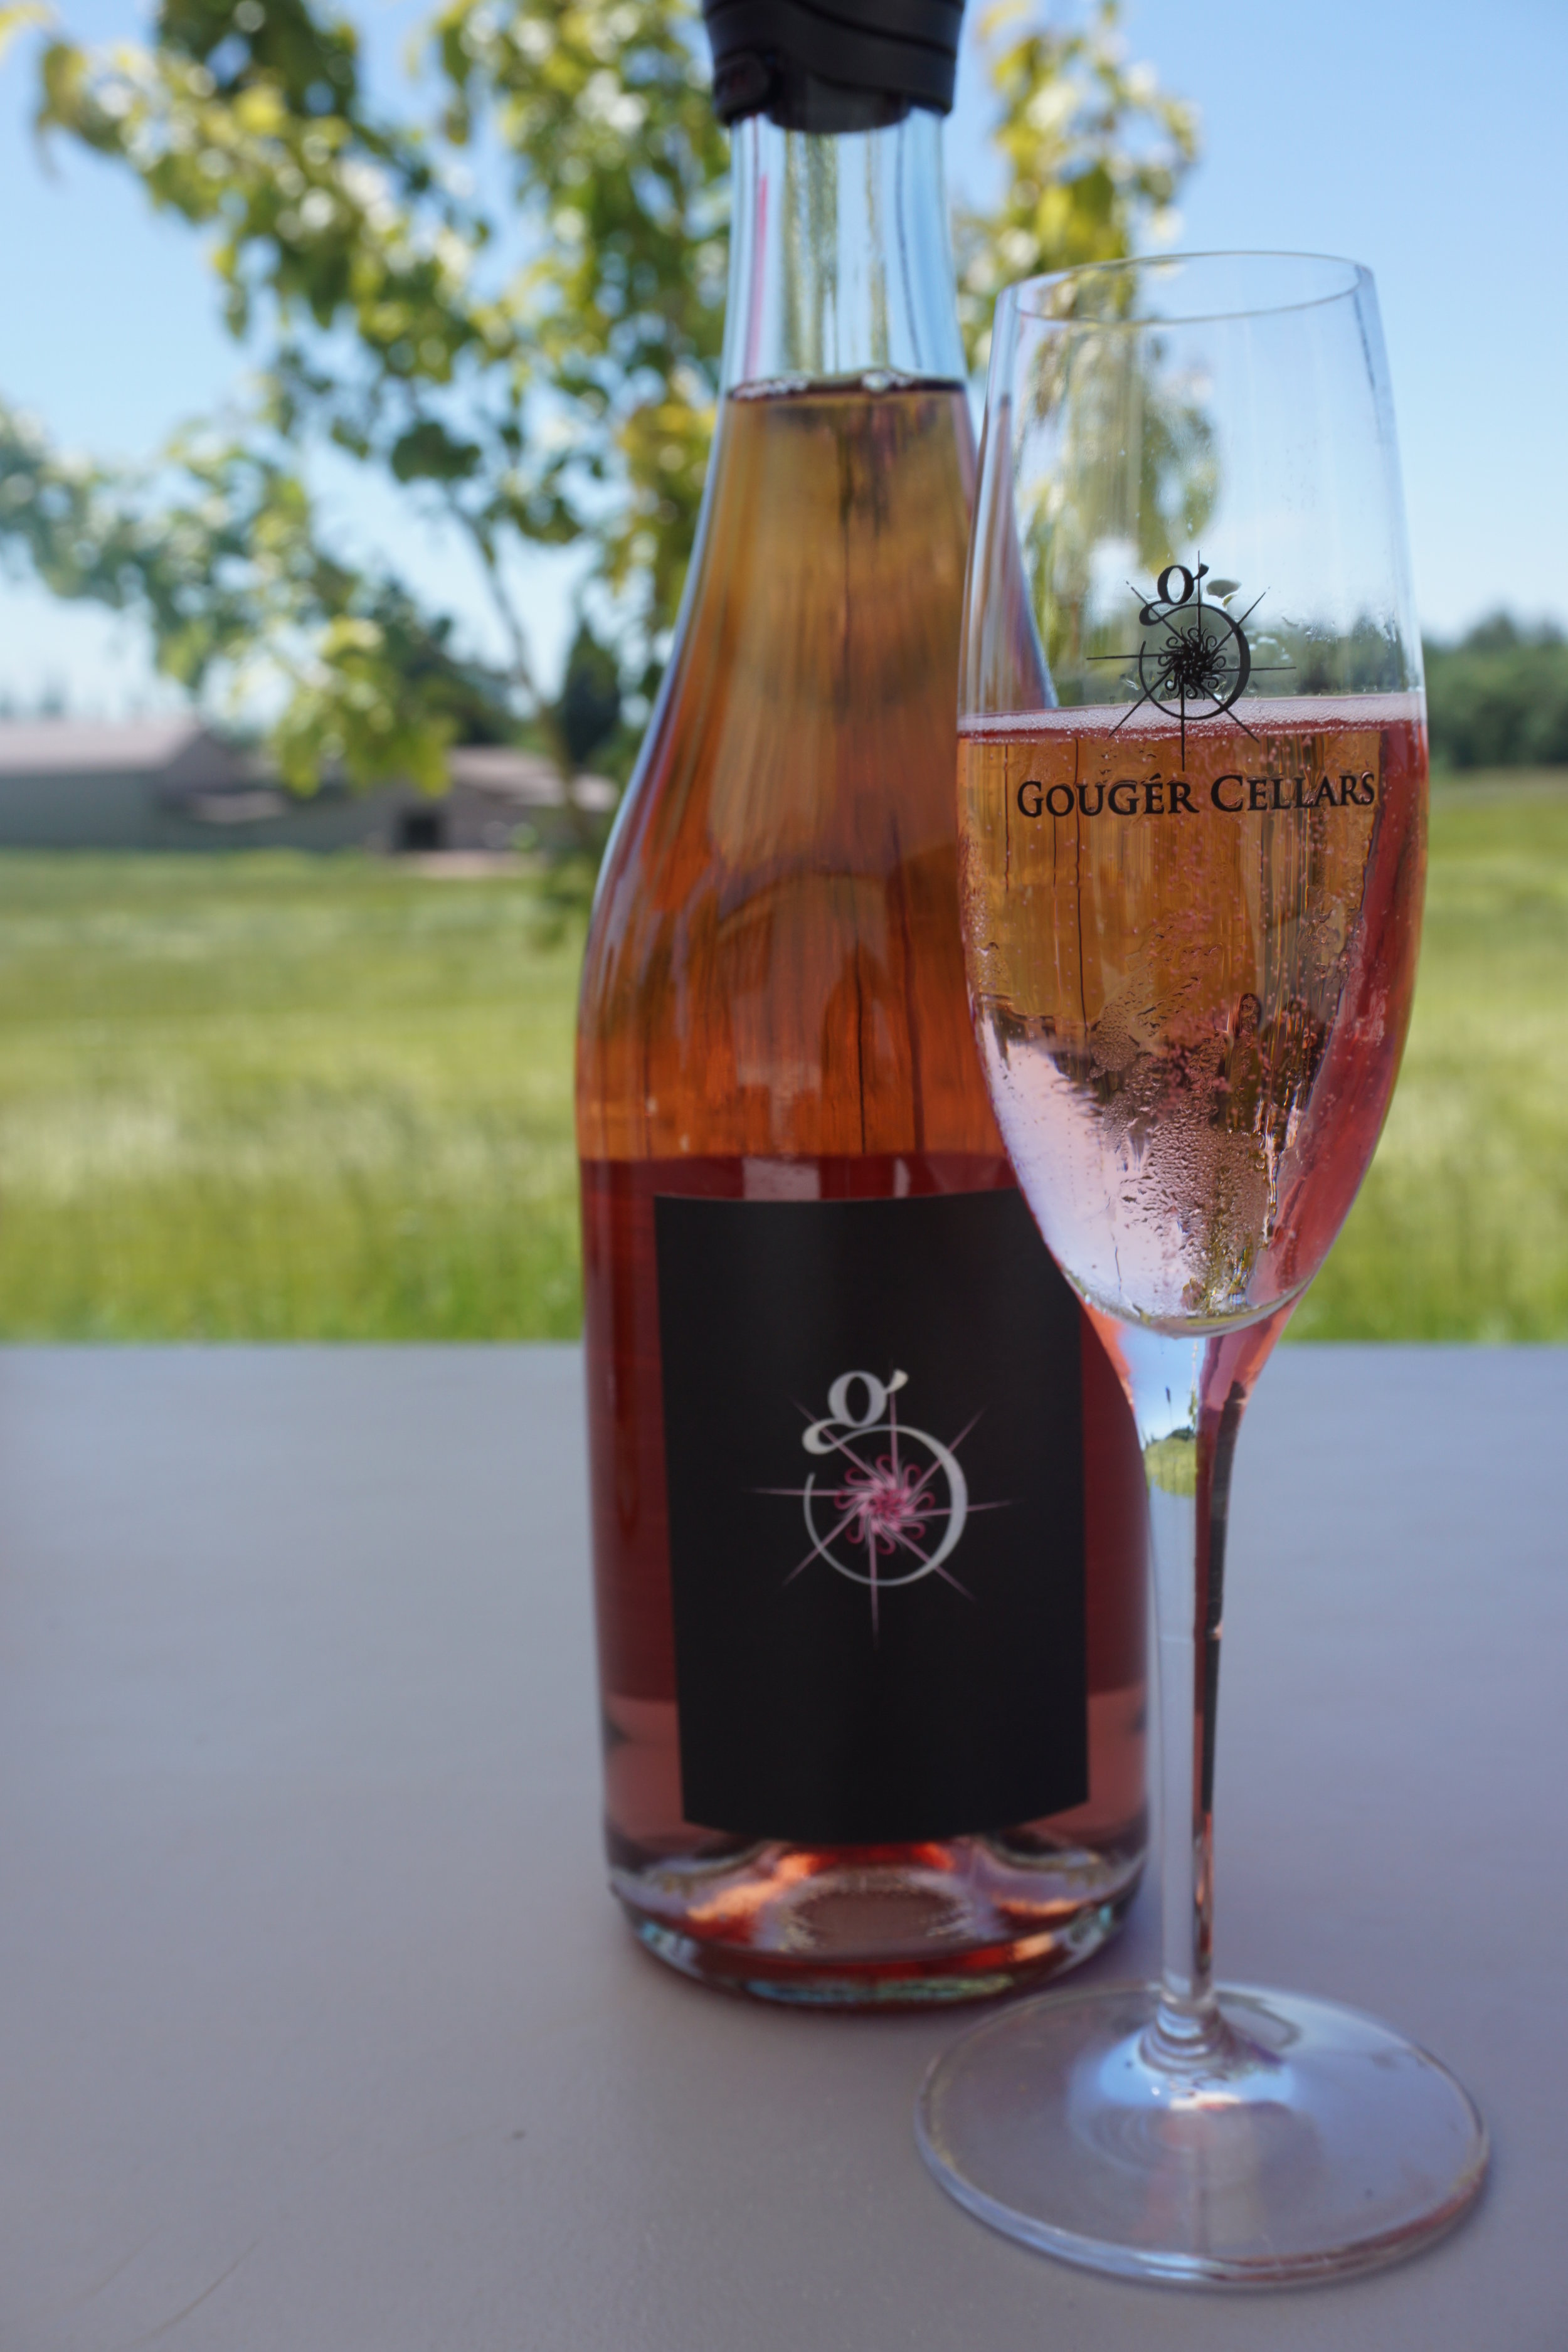 The strawberry appearance of Gougér Cellars Sparkling Rosé is followed up by a nose of strawberries and a mouth of crisp acidity, ripe raspberry, strawberry and a hint of rhubarb.